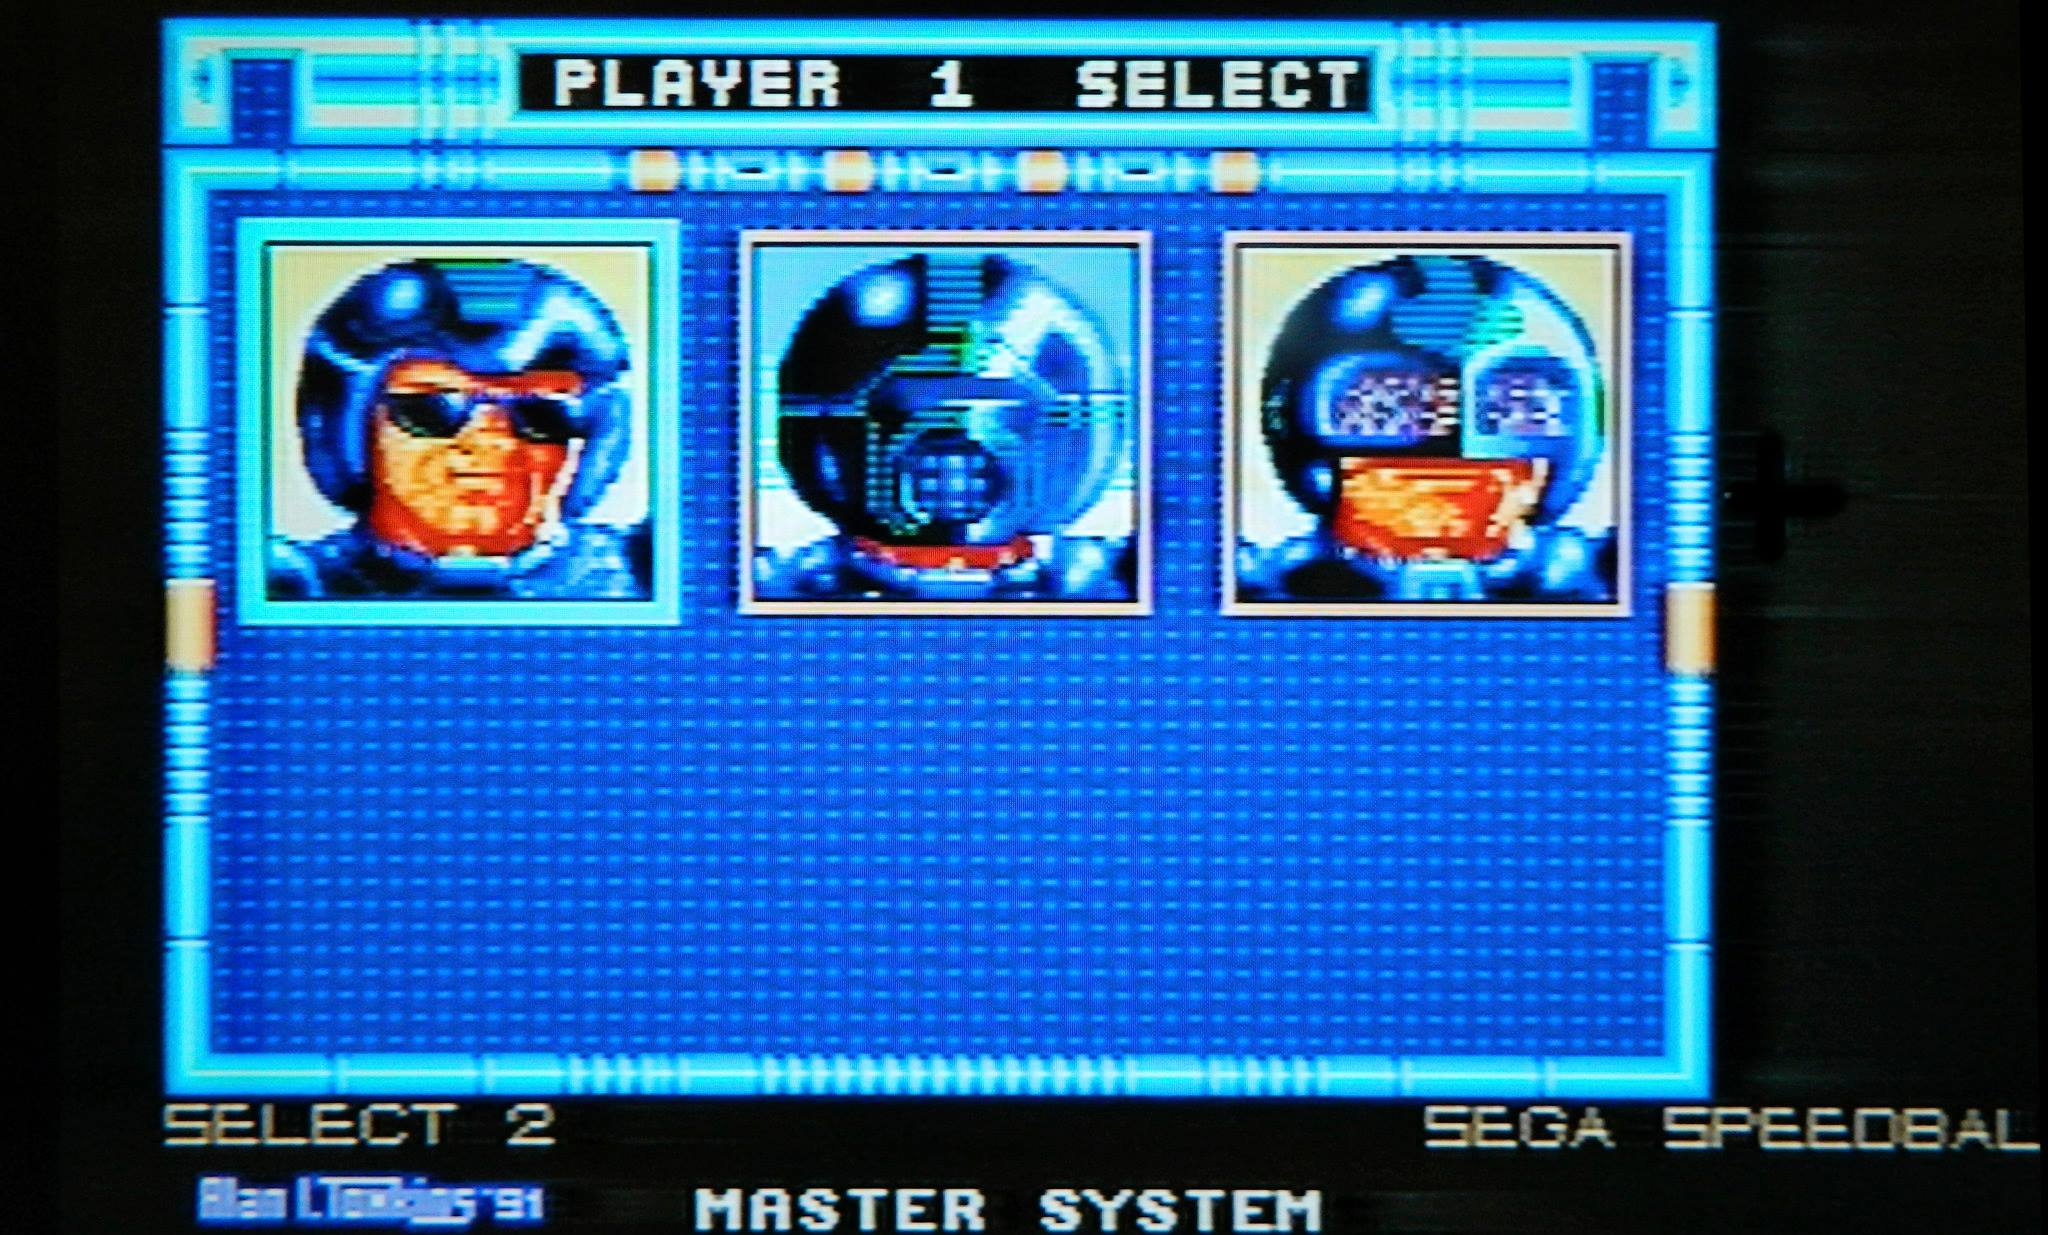 Alan did the Sega Mastersystem conversions of 'Xenon 2' and 'Speedball' (of which we see a shot over here)